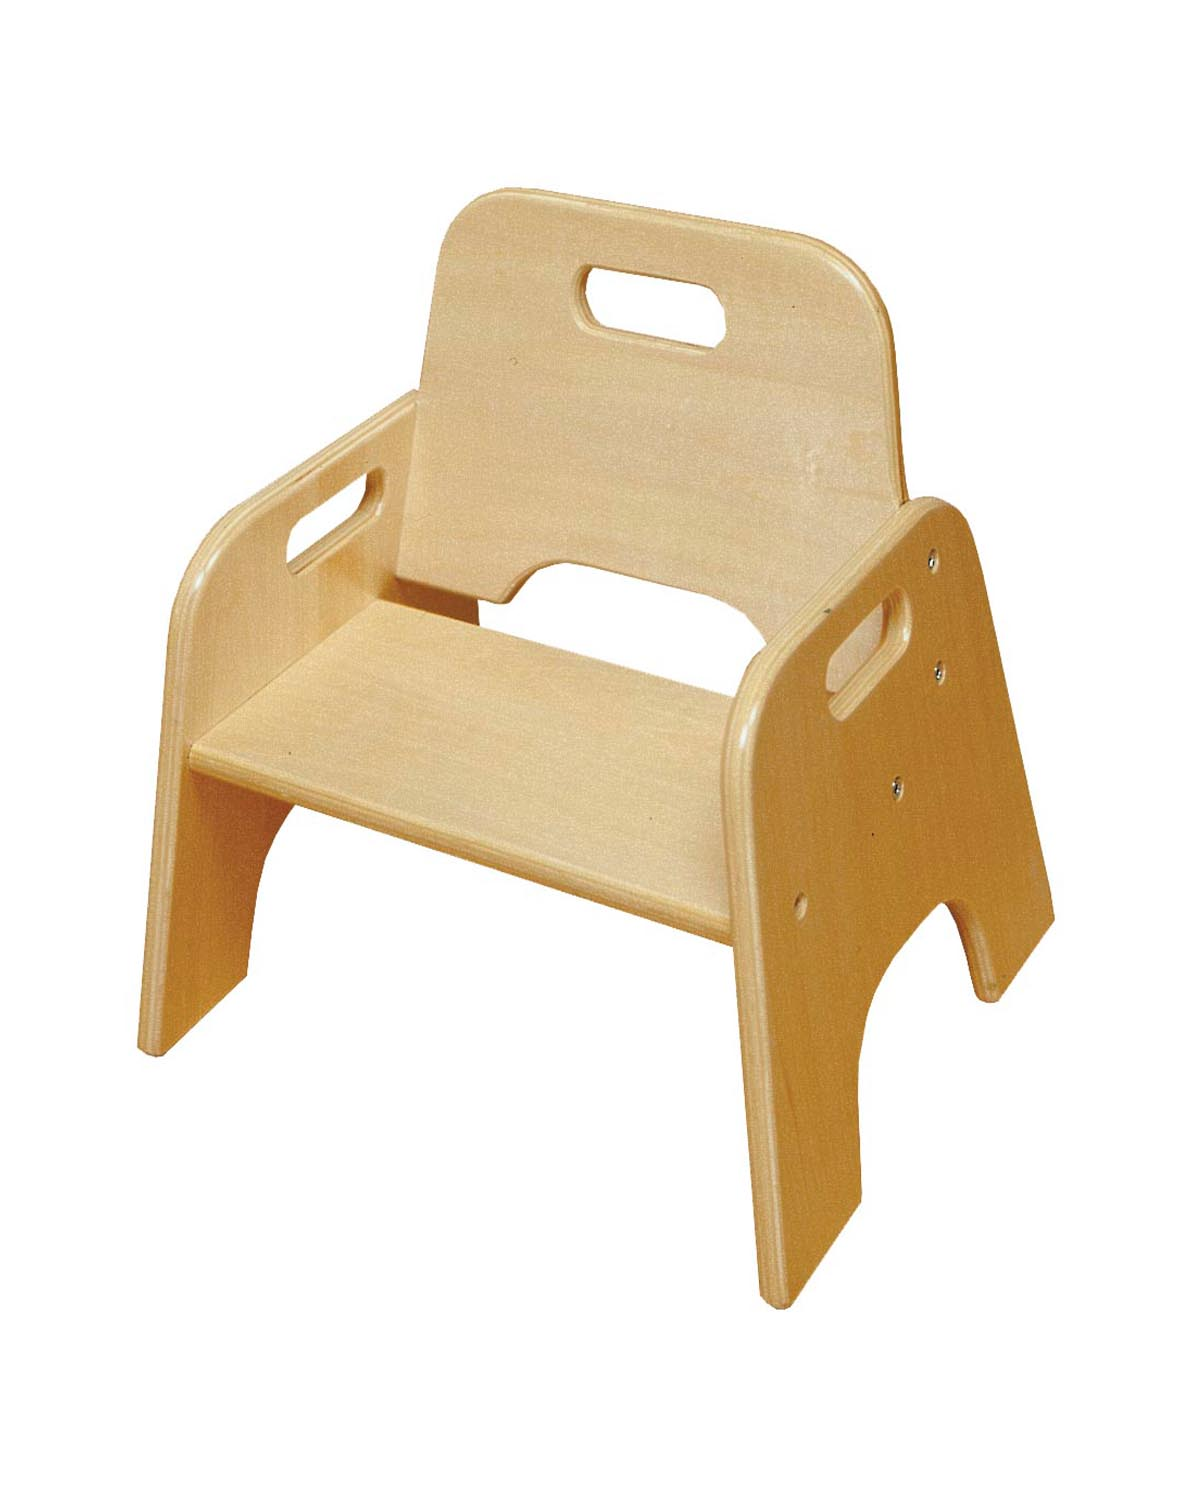 Kids Wooden Chair Toddler Chairs Images Reverse Search